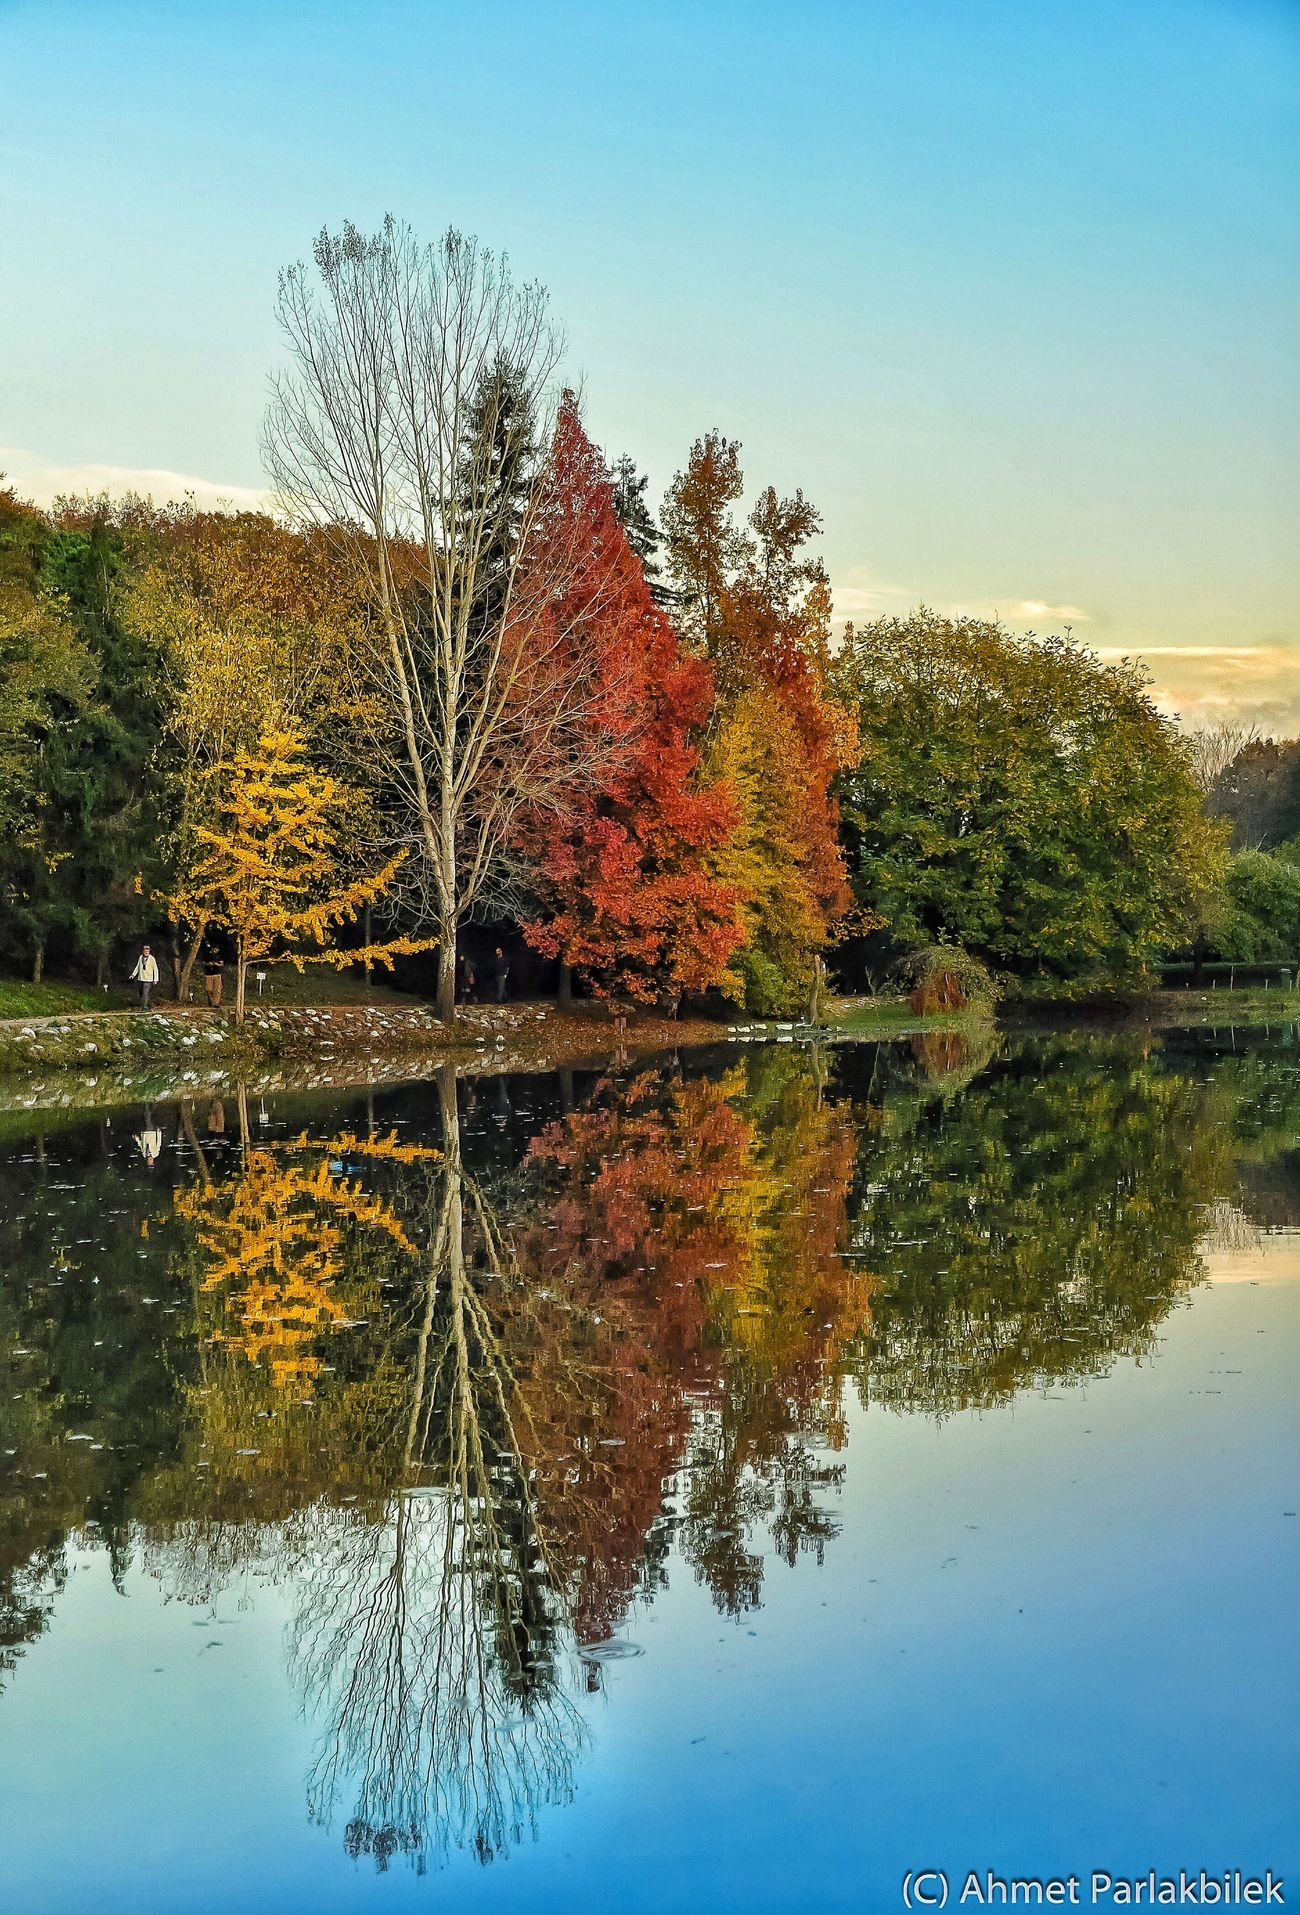 Autumn Reflection Water Tree Lake Waterfront Tranquility Tranquil Scene Scenics Calm Clear Sky Change Blue Beauty In Nature Standing Water Growth Symmetry Majestic Nature Day Non-urban Scene Trees EyeEm Nature Lover